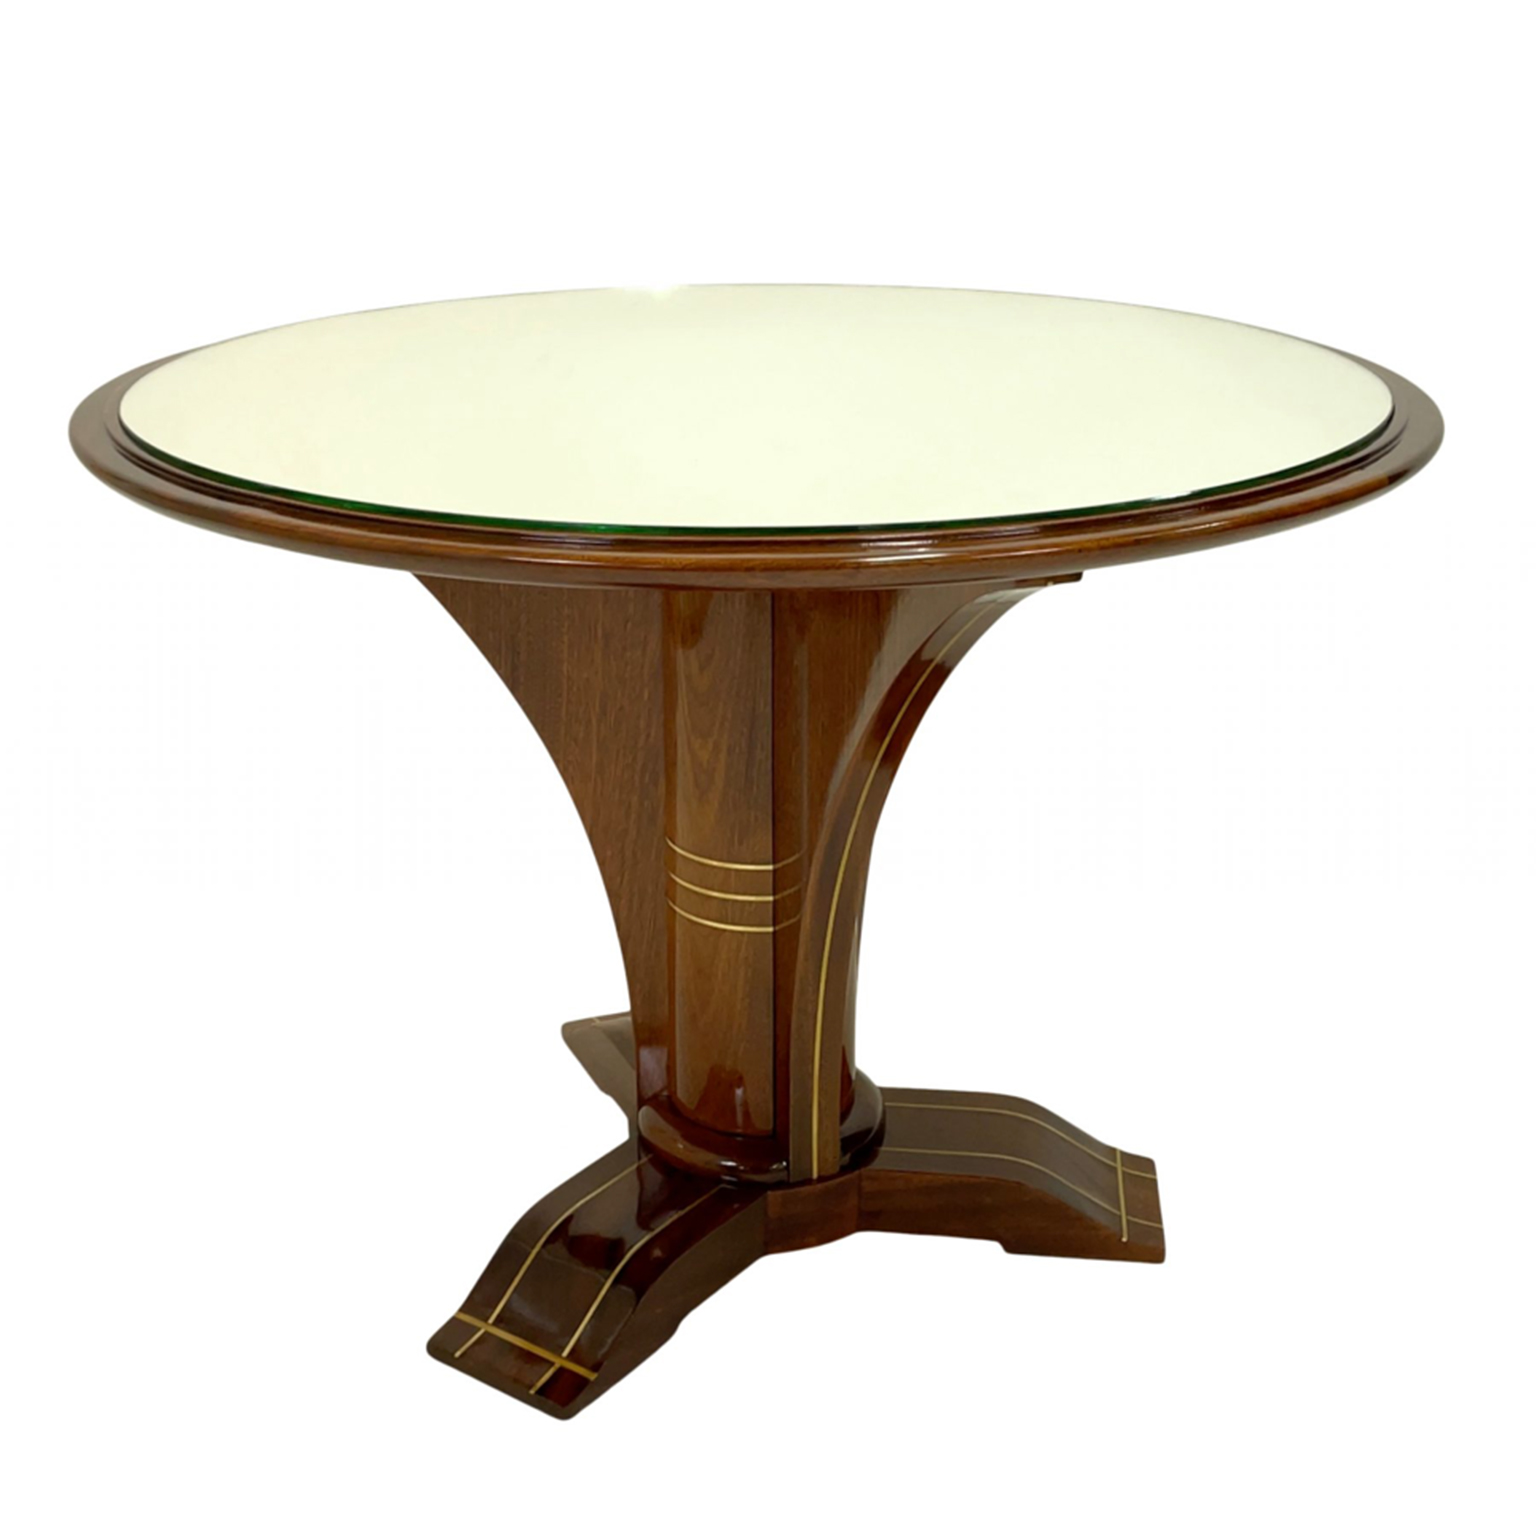 Mahogany side table with mirror top and brass inlay details.